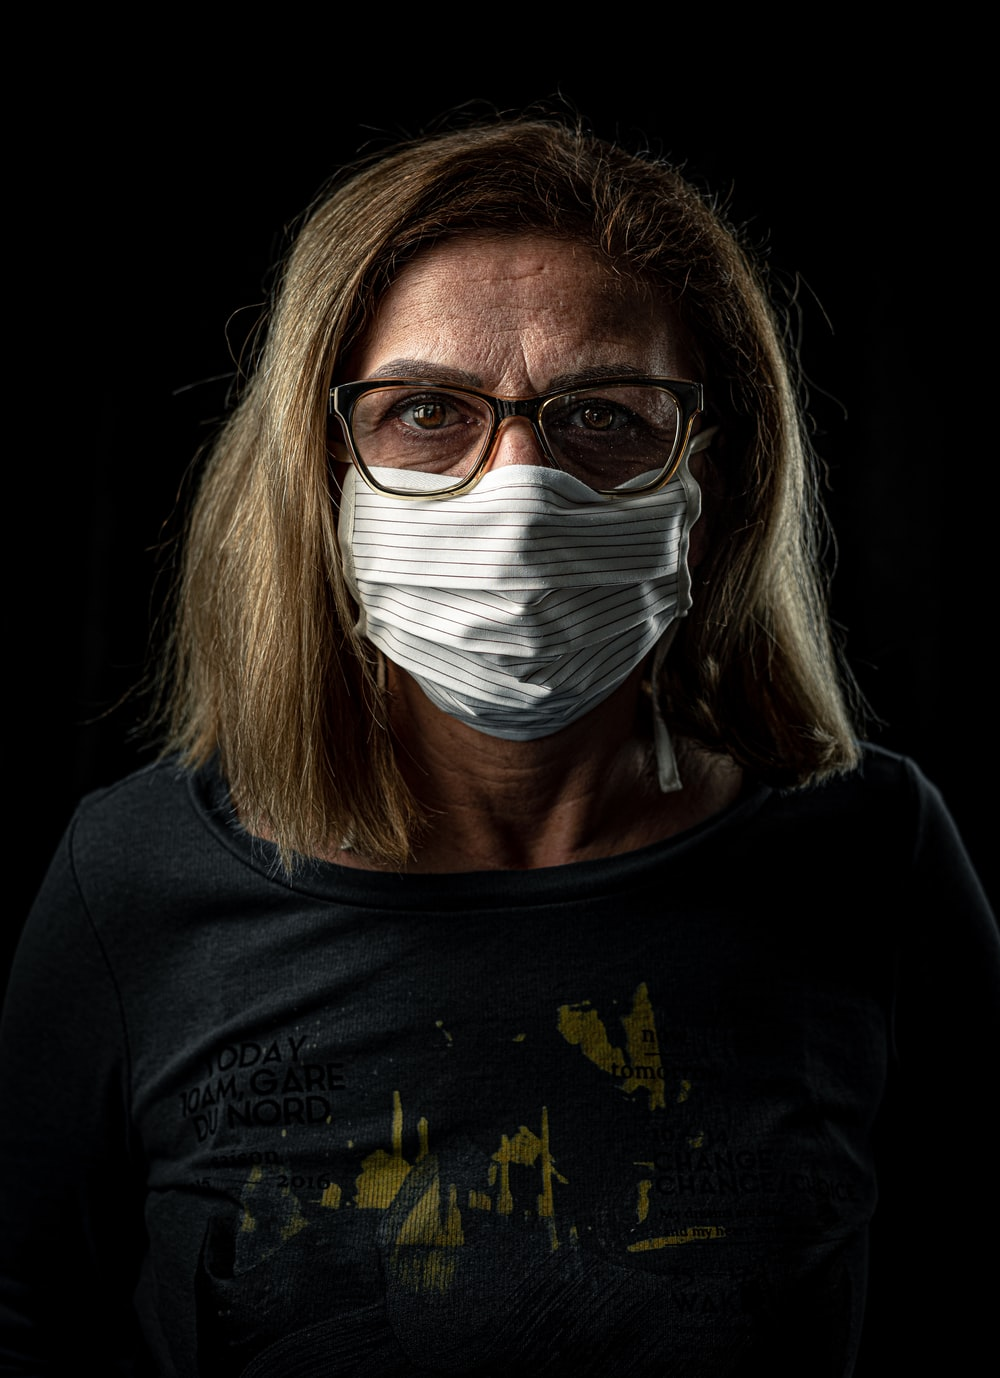 woman in black crew neck shirt with white face mask